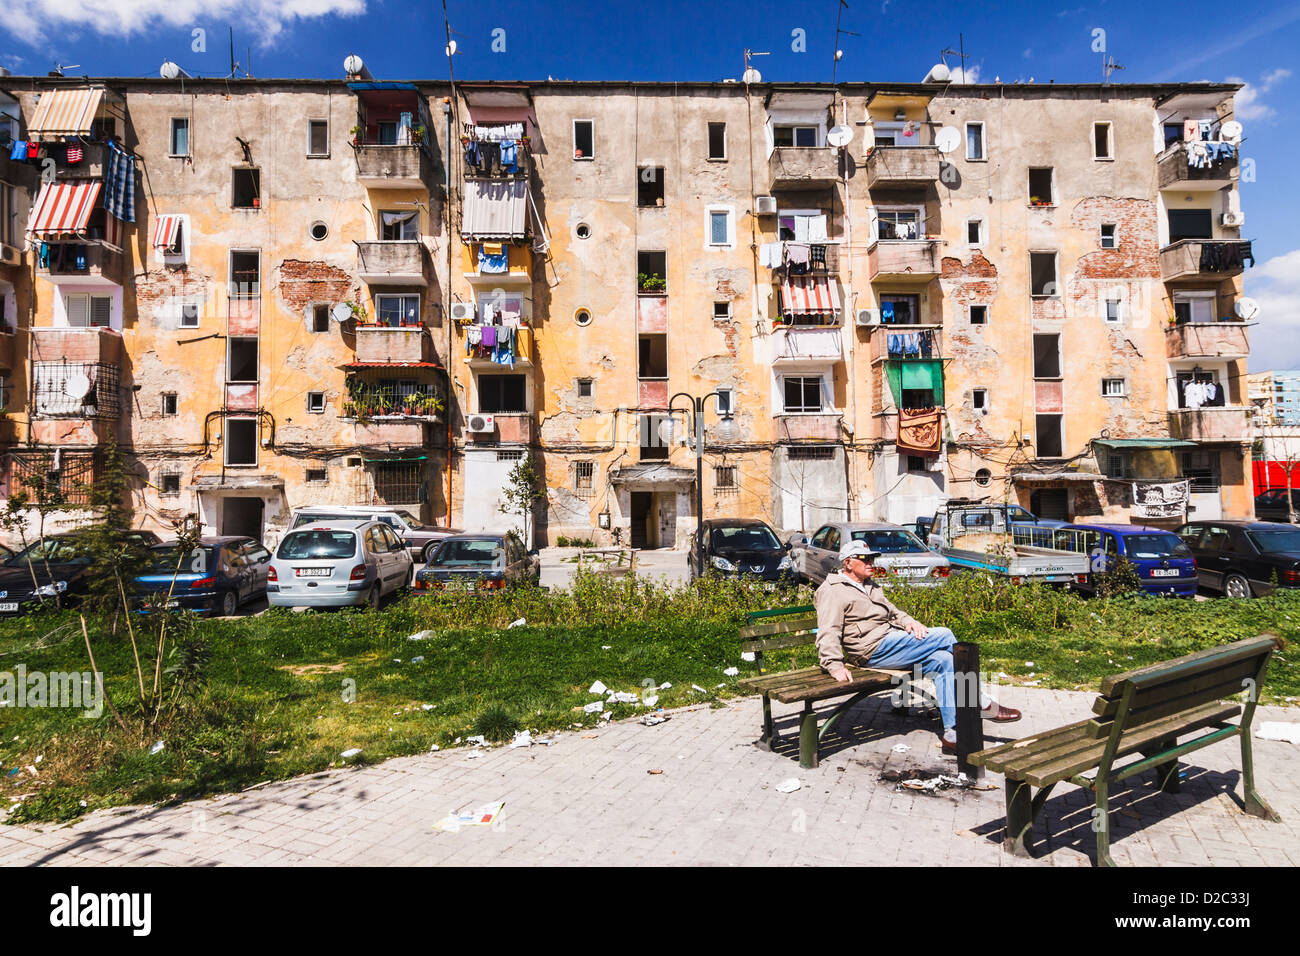 Albanian man sitting on a bench in a rundown park of Tirana, Albania - Stock Image